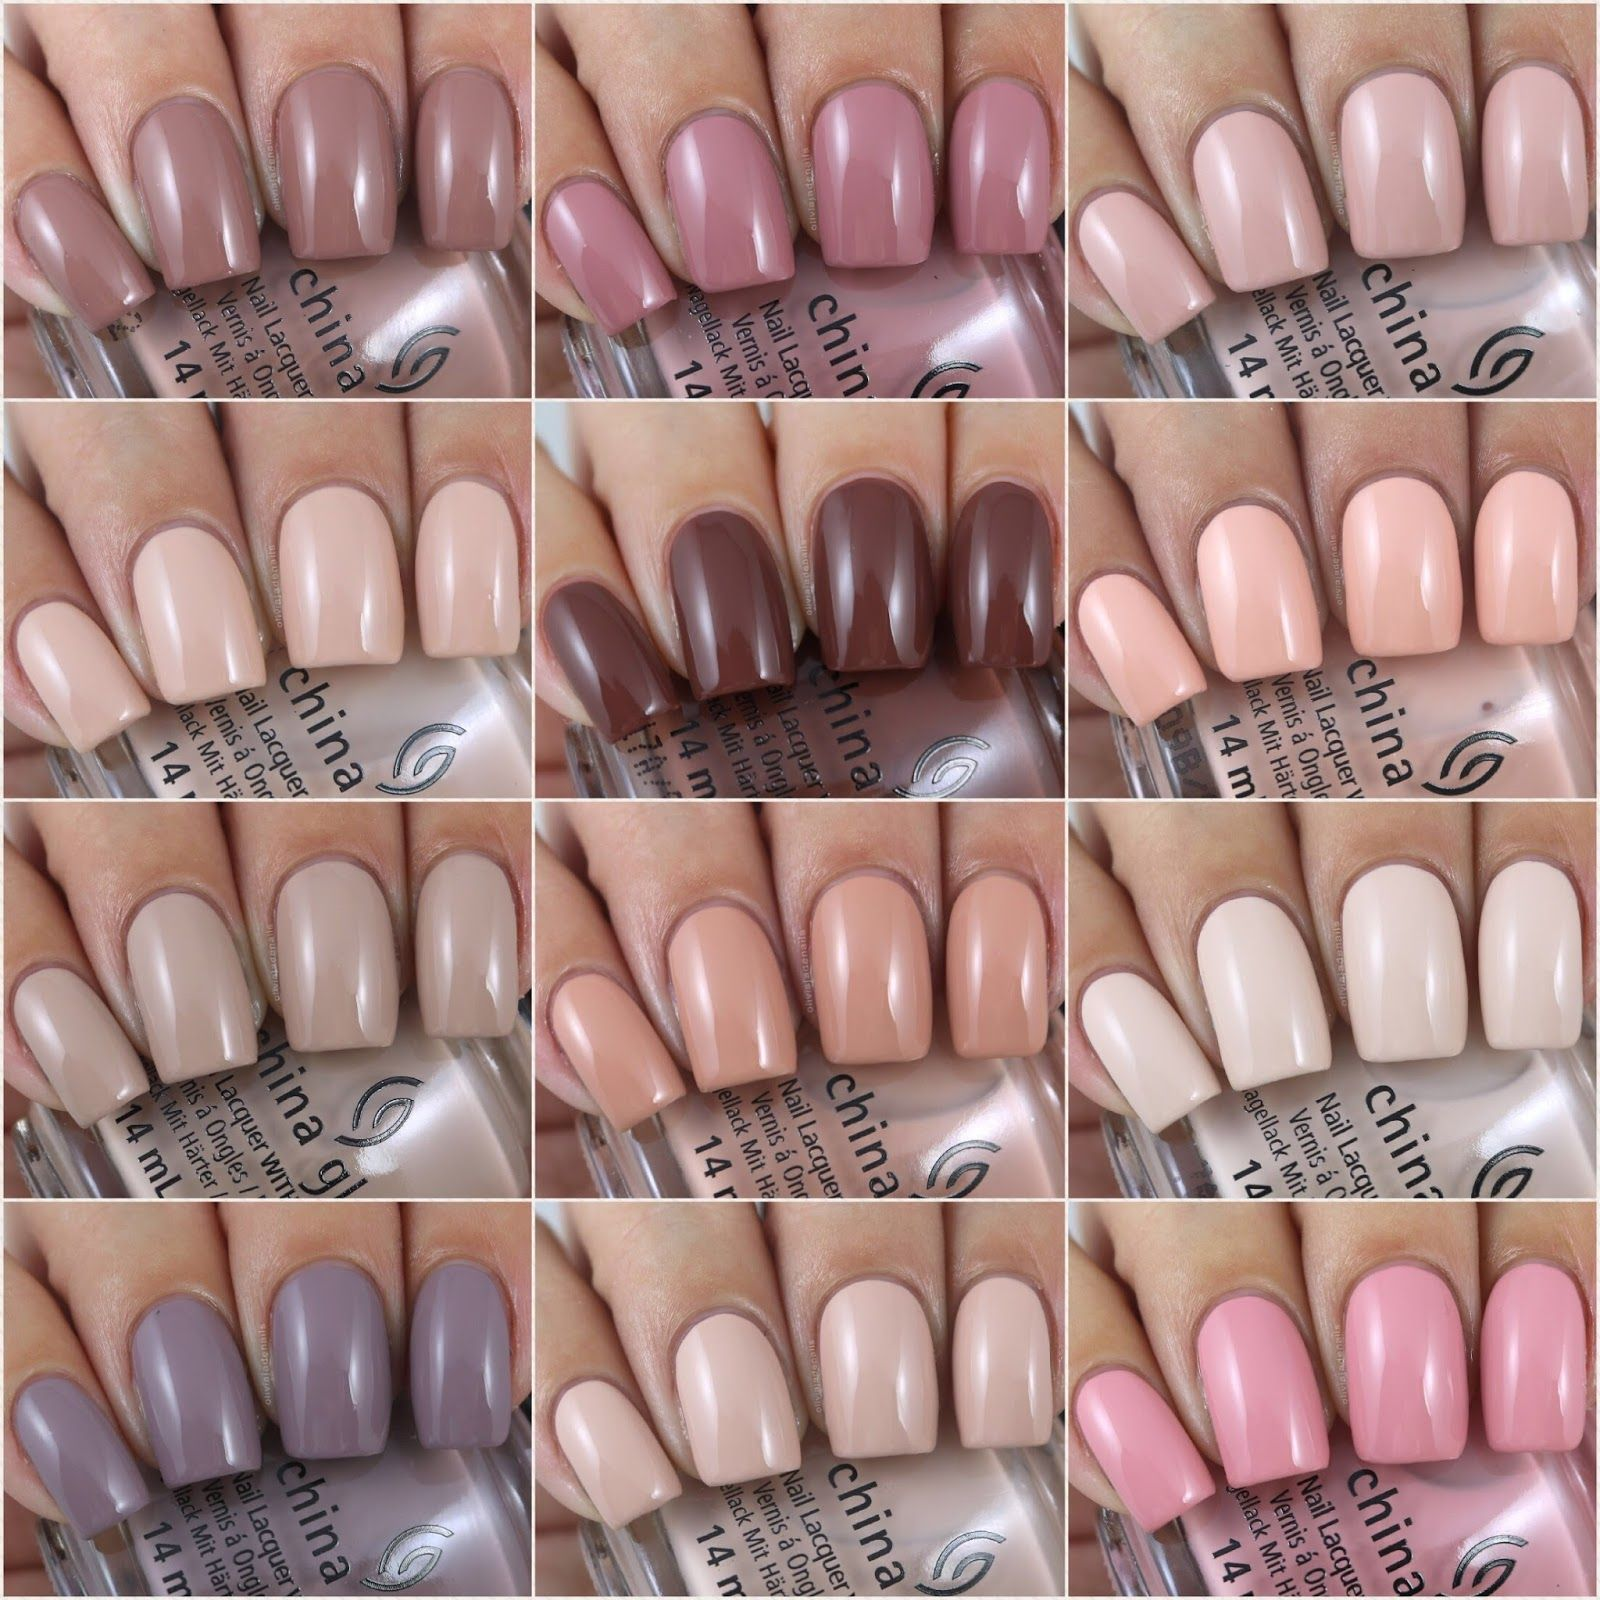 China Glaze Shades Of Nude Collection - Swatches & Review by Olivia ...